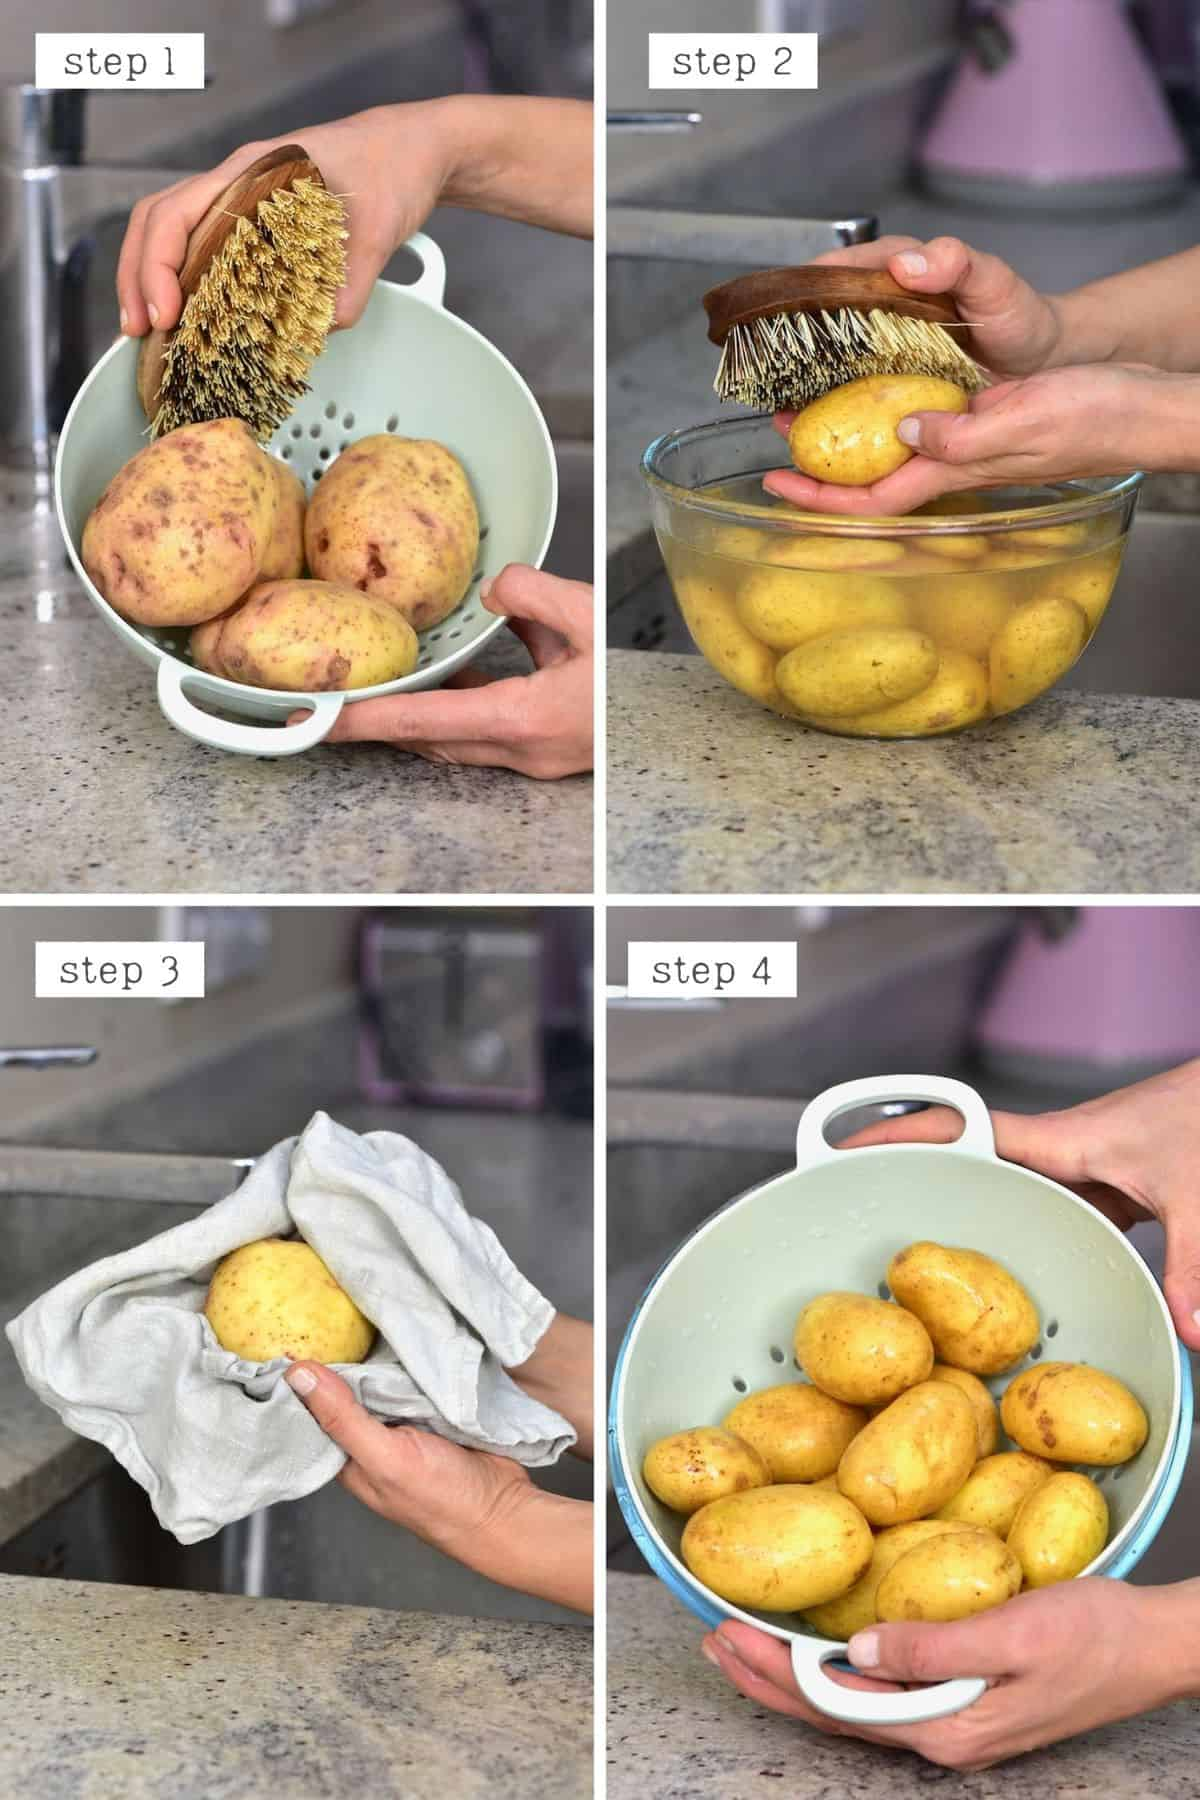 Steps for cleaning potatoes